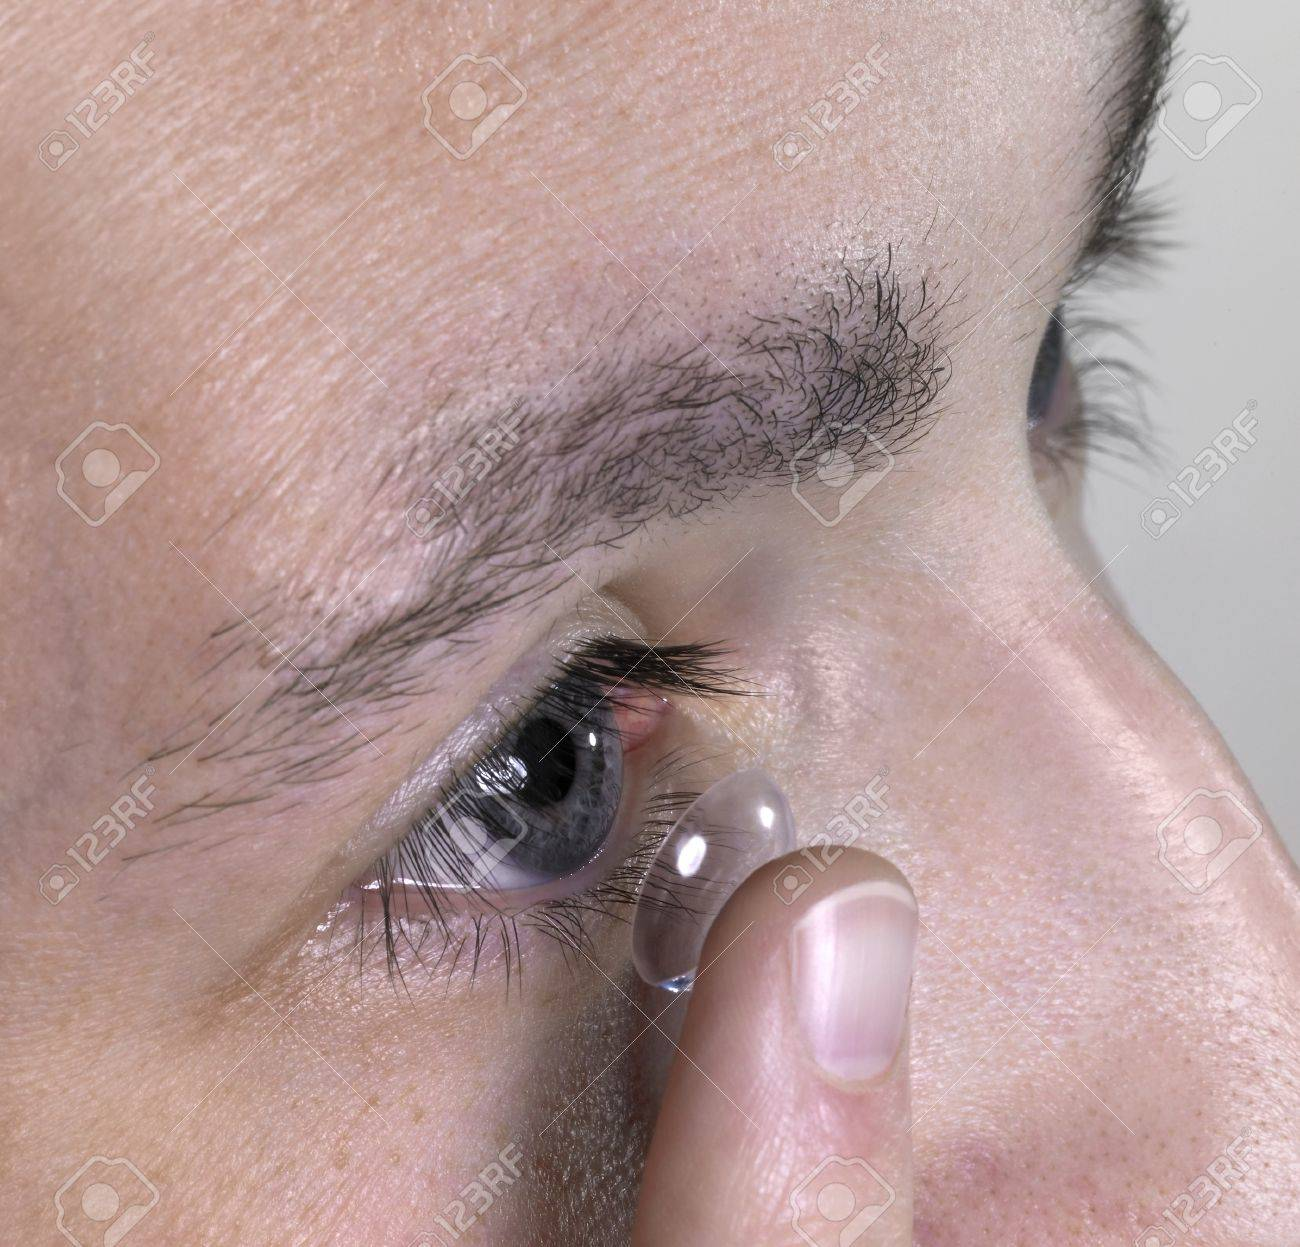 detail of a eye while placing a contact lens Stock Photo - 10839855